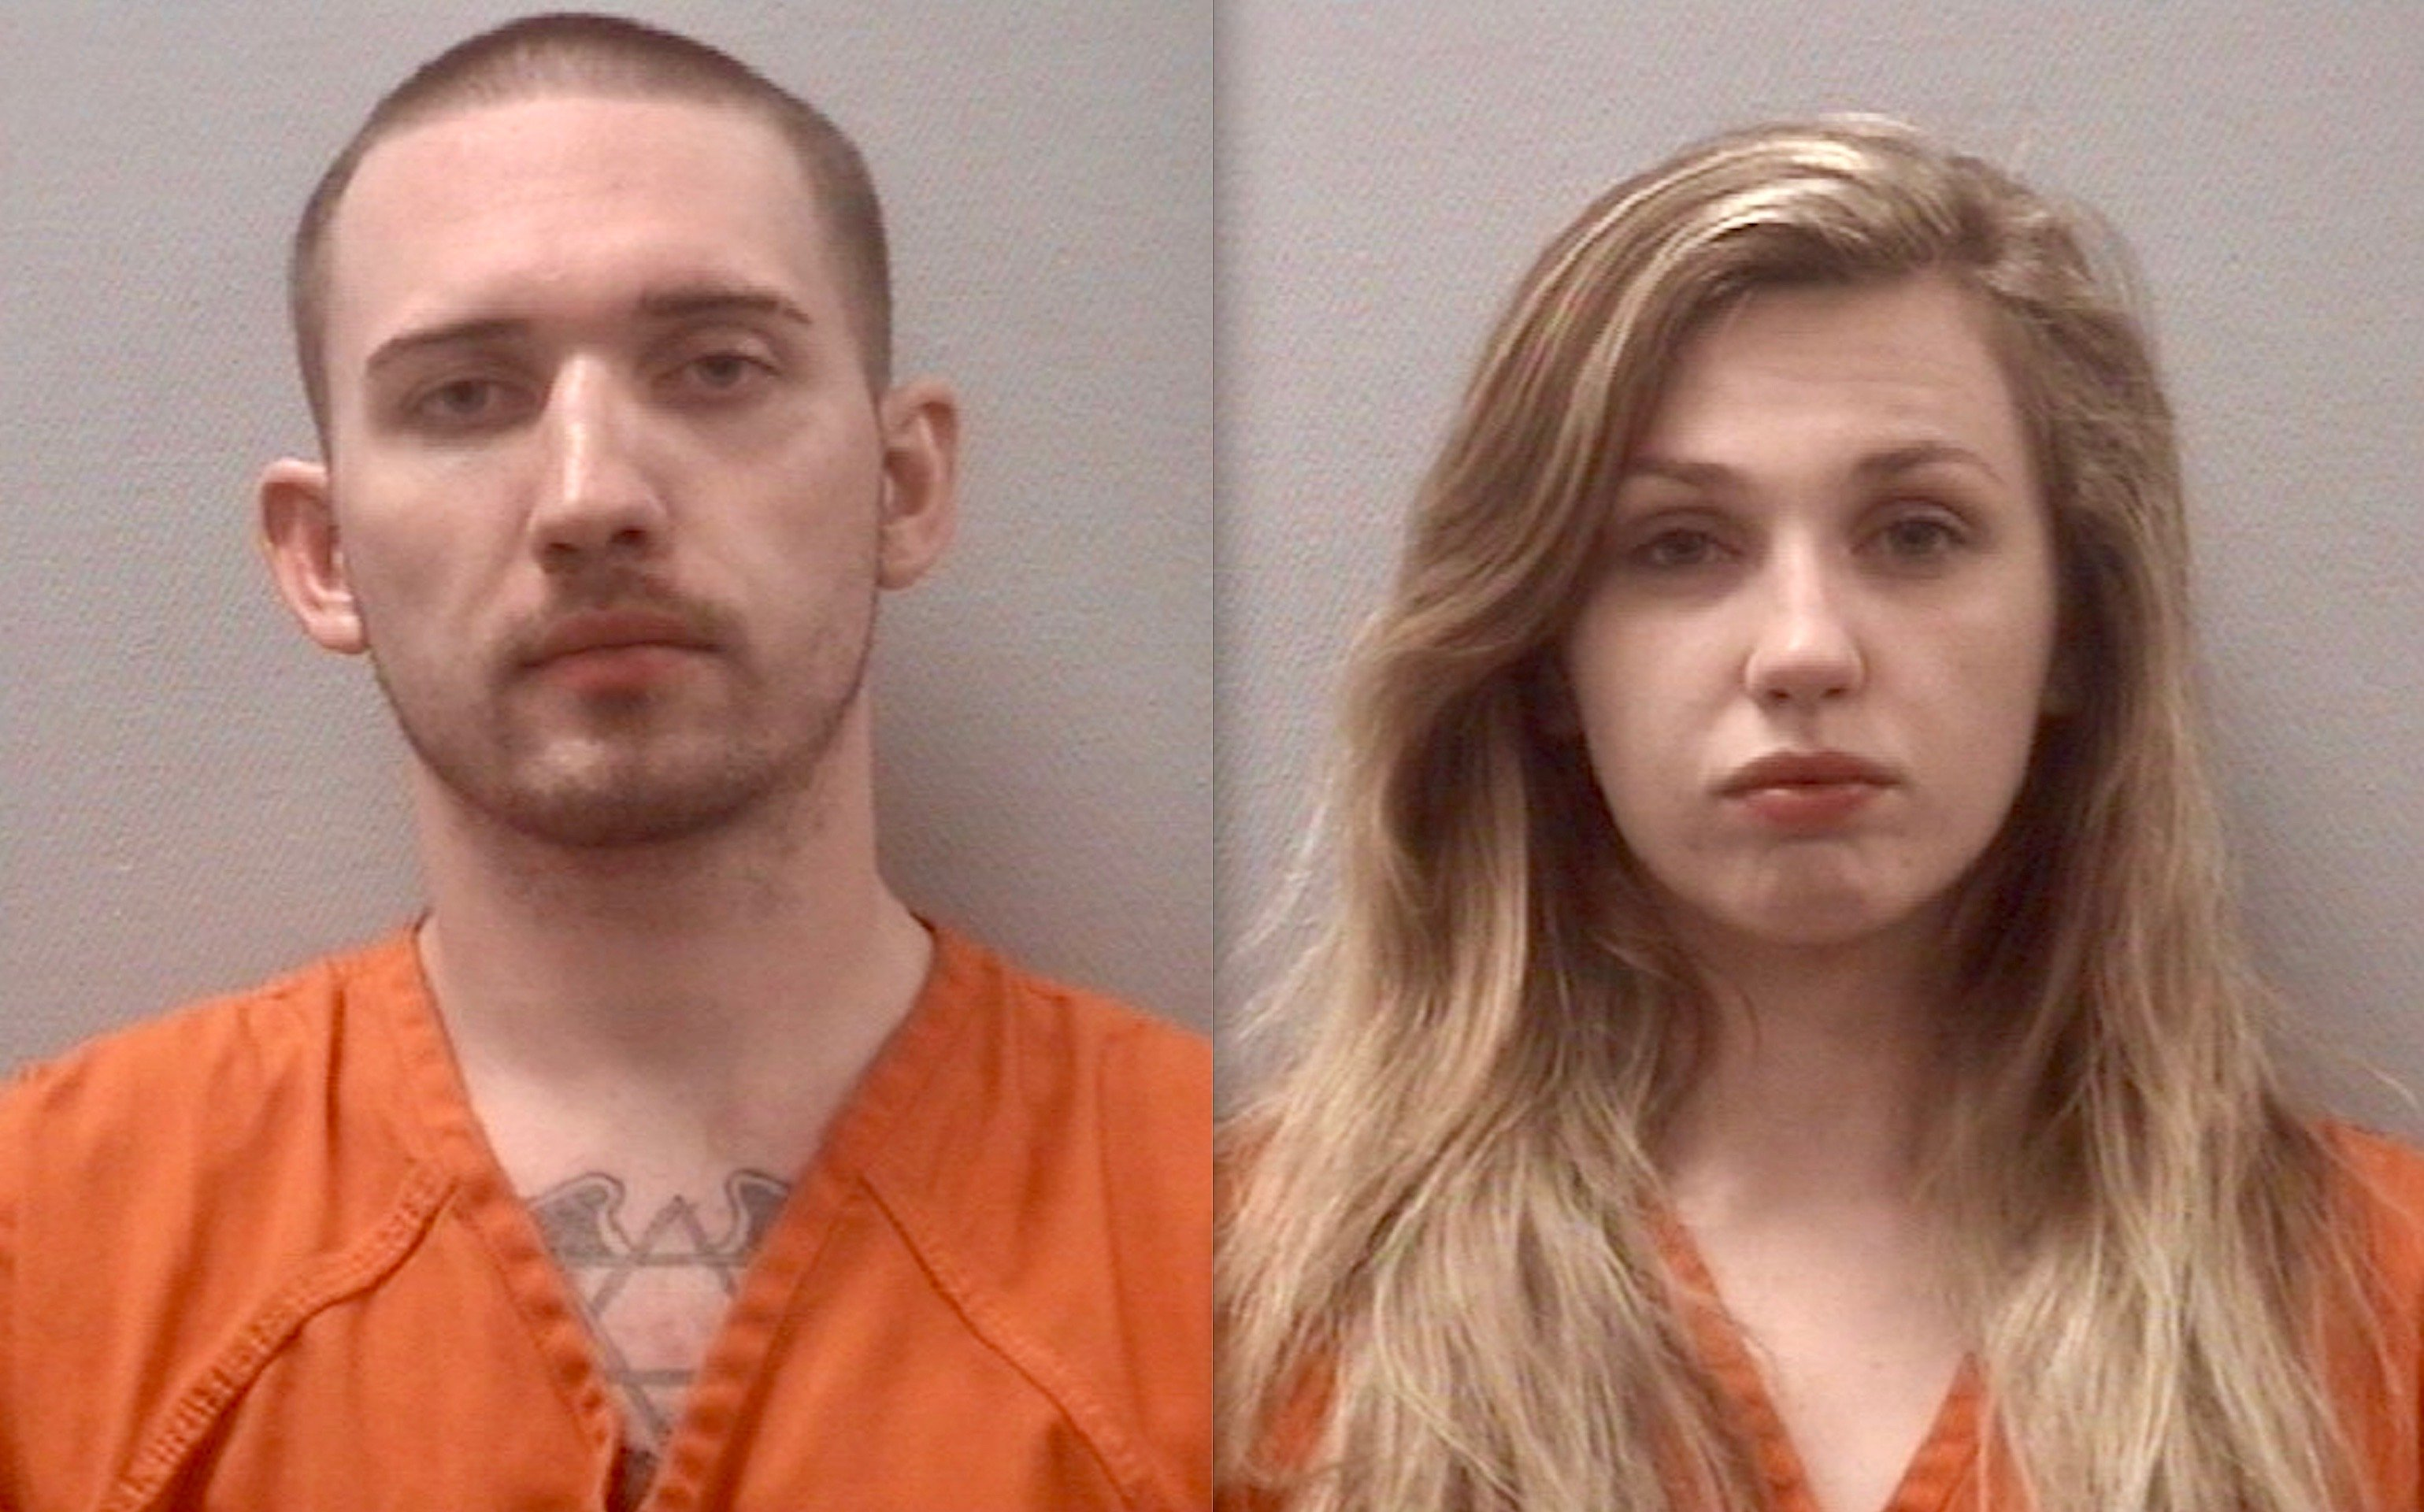 SC Kidnapping Case: Mug Shots Released – FITSNews